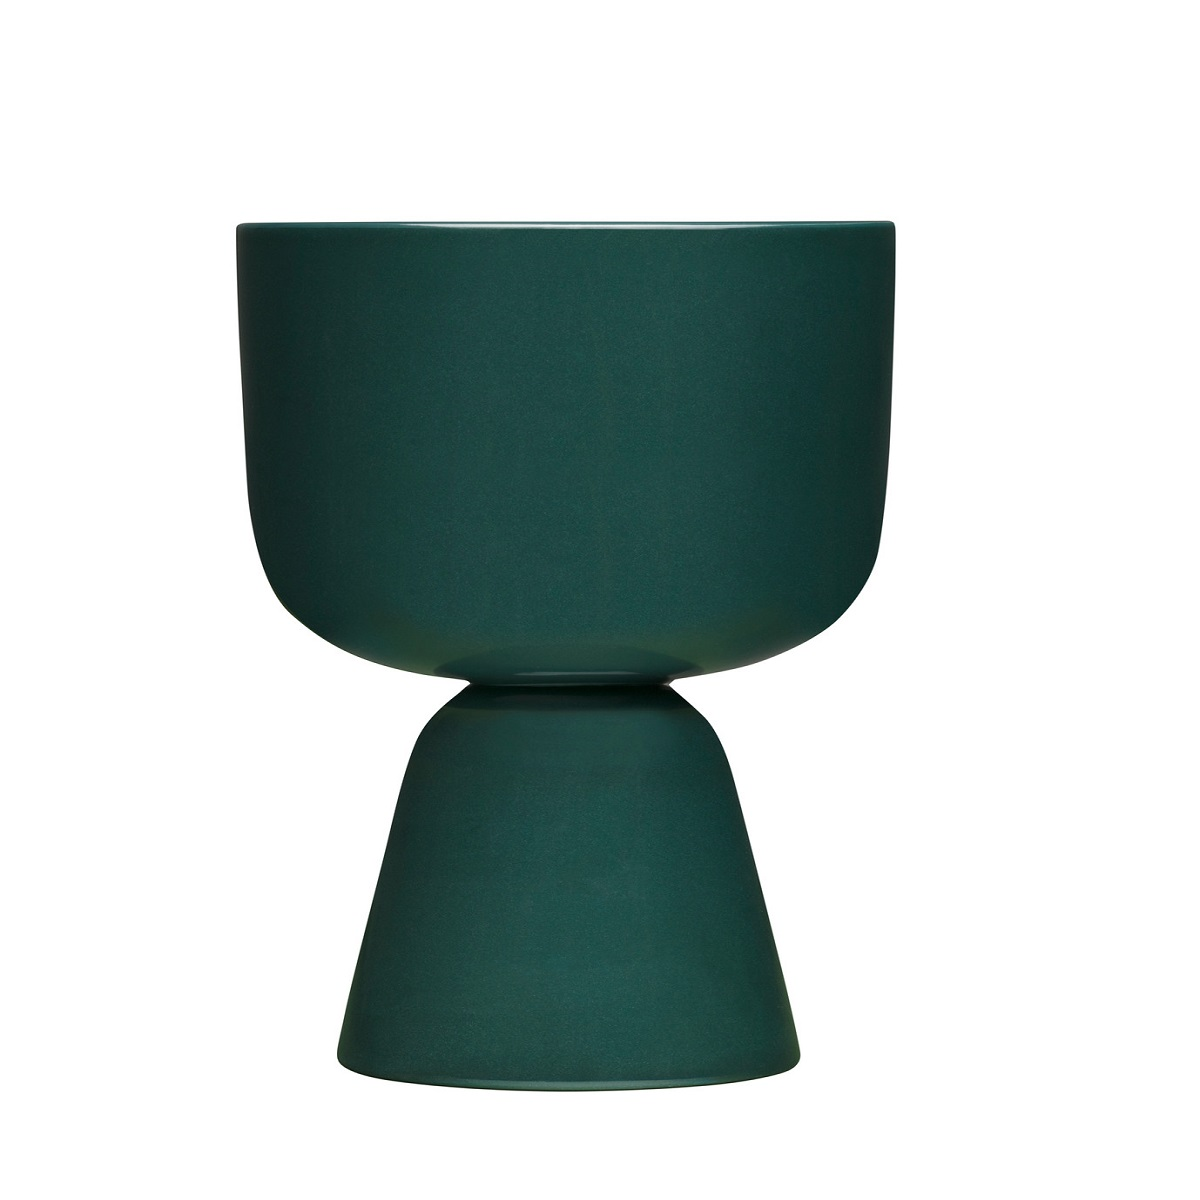 1051522 Nappula plant pot 230x155mm dark green